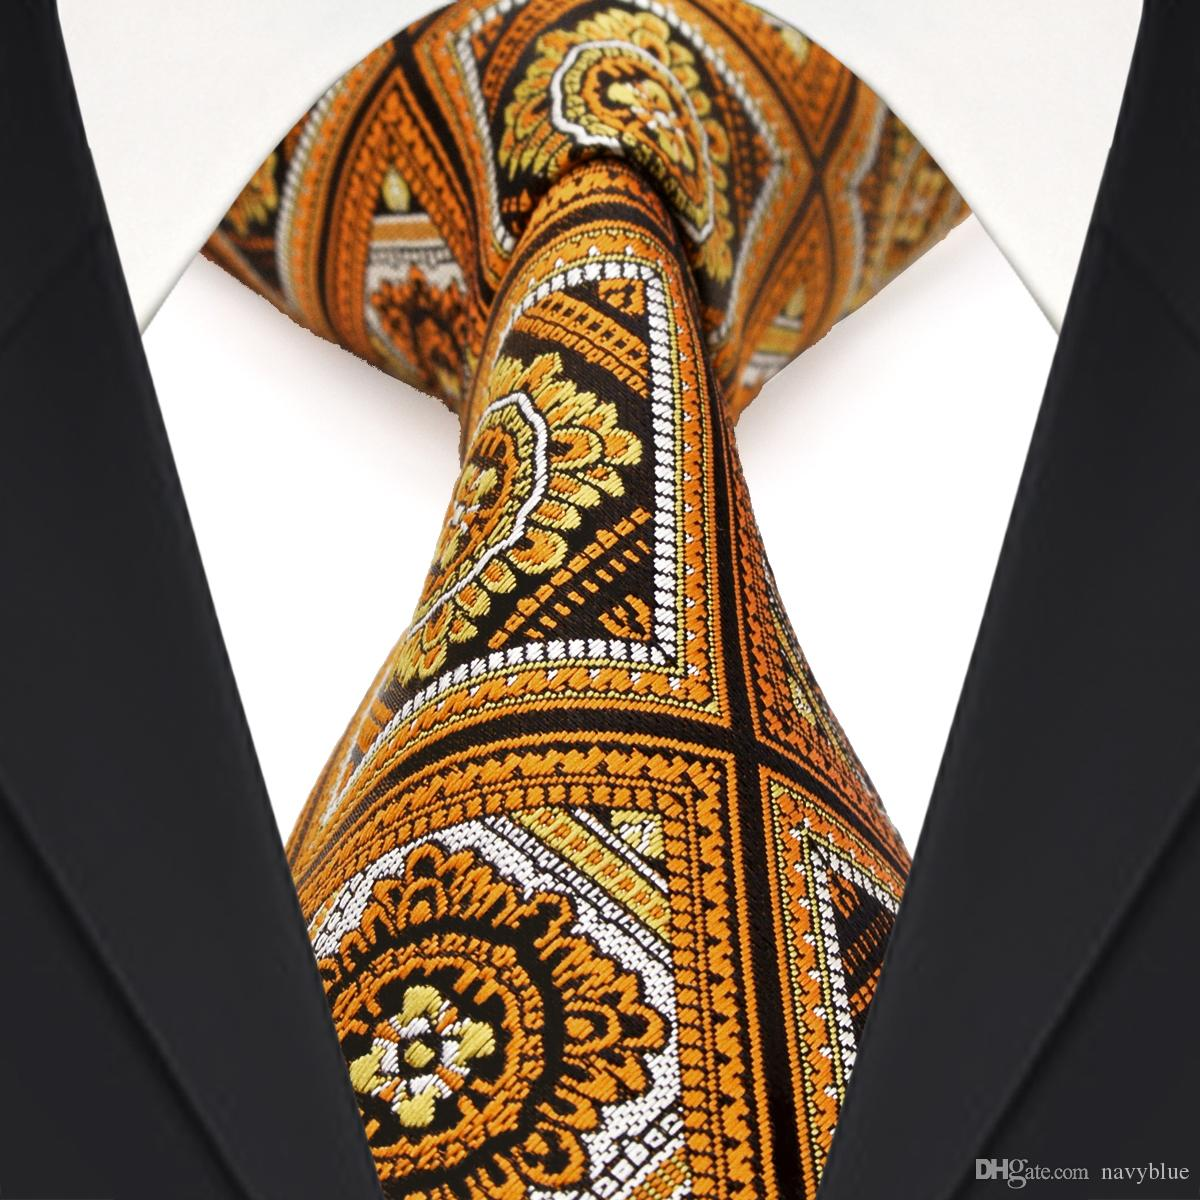 accc0374cec8 Wholesale F17 Yellow Black White Orange Checked Floral Mens Ties Neckties  100% Silk Jacquard Woven Classy Black Bow Tie High Neck Blouse From  Navyblue, ...